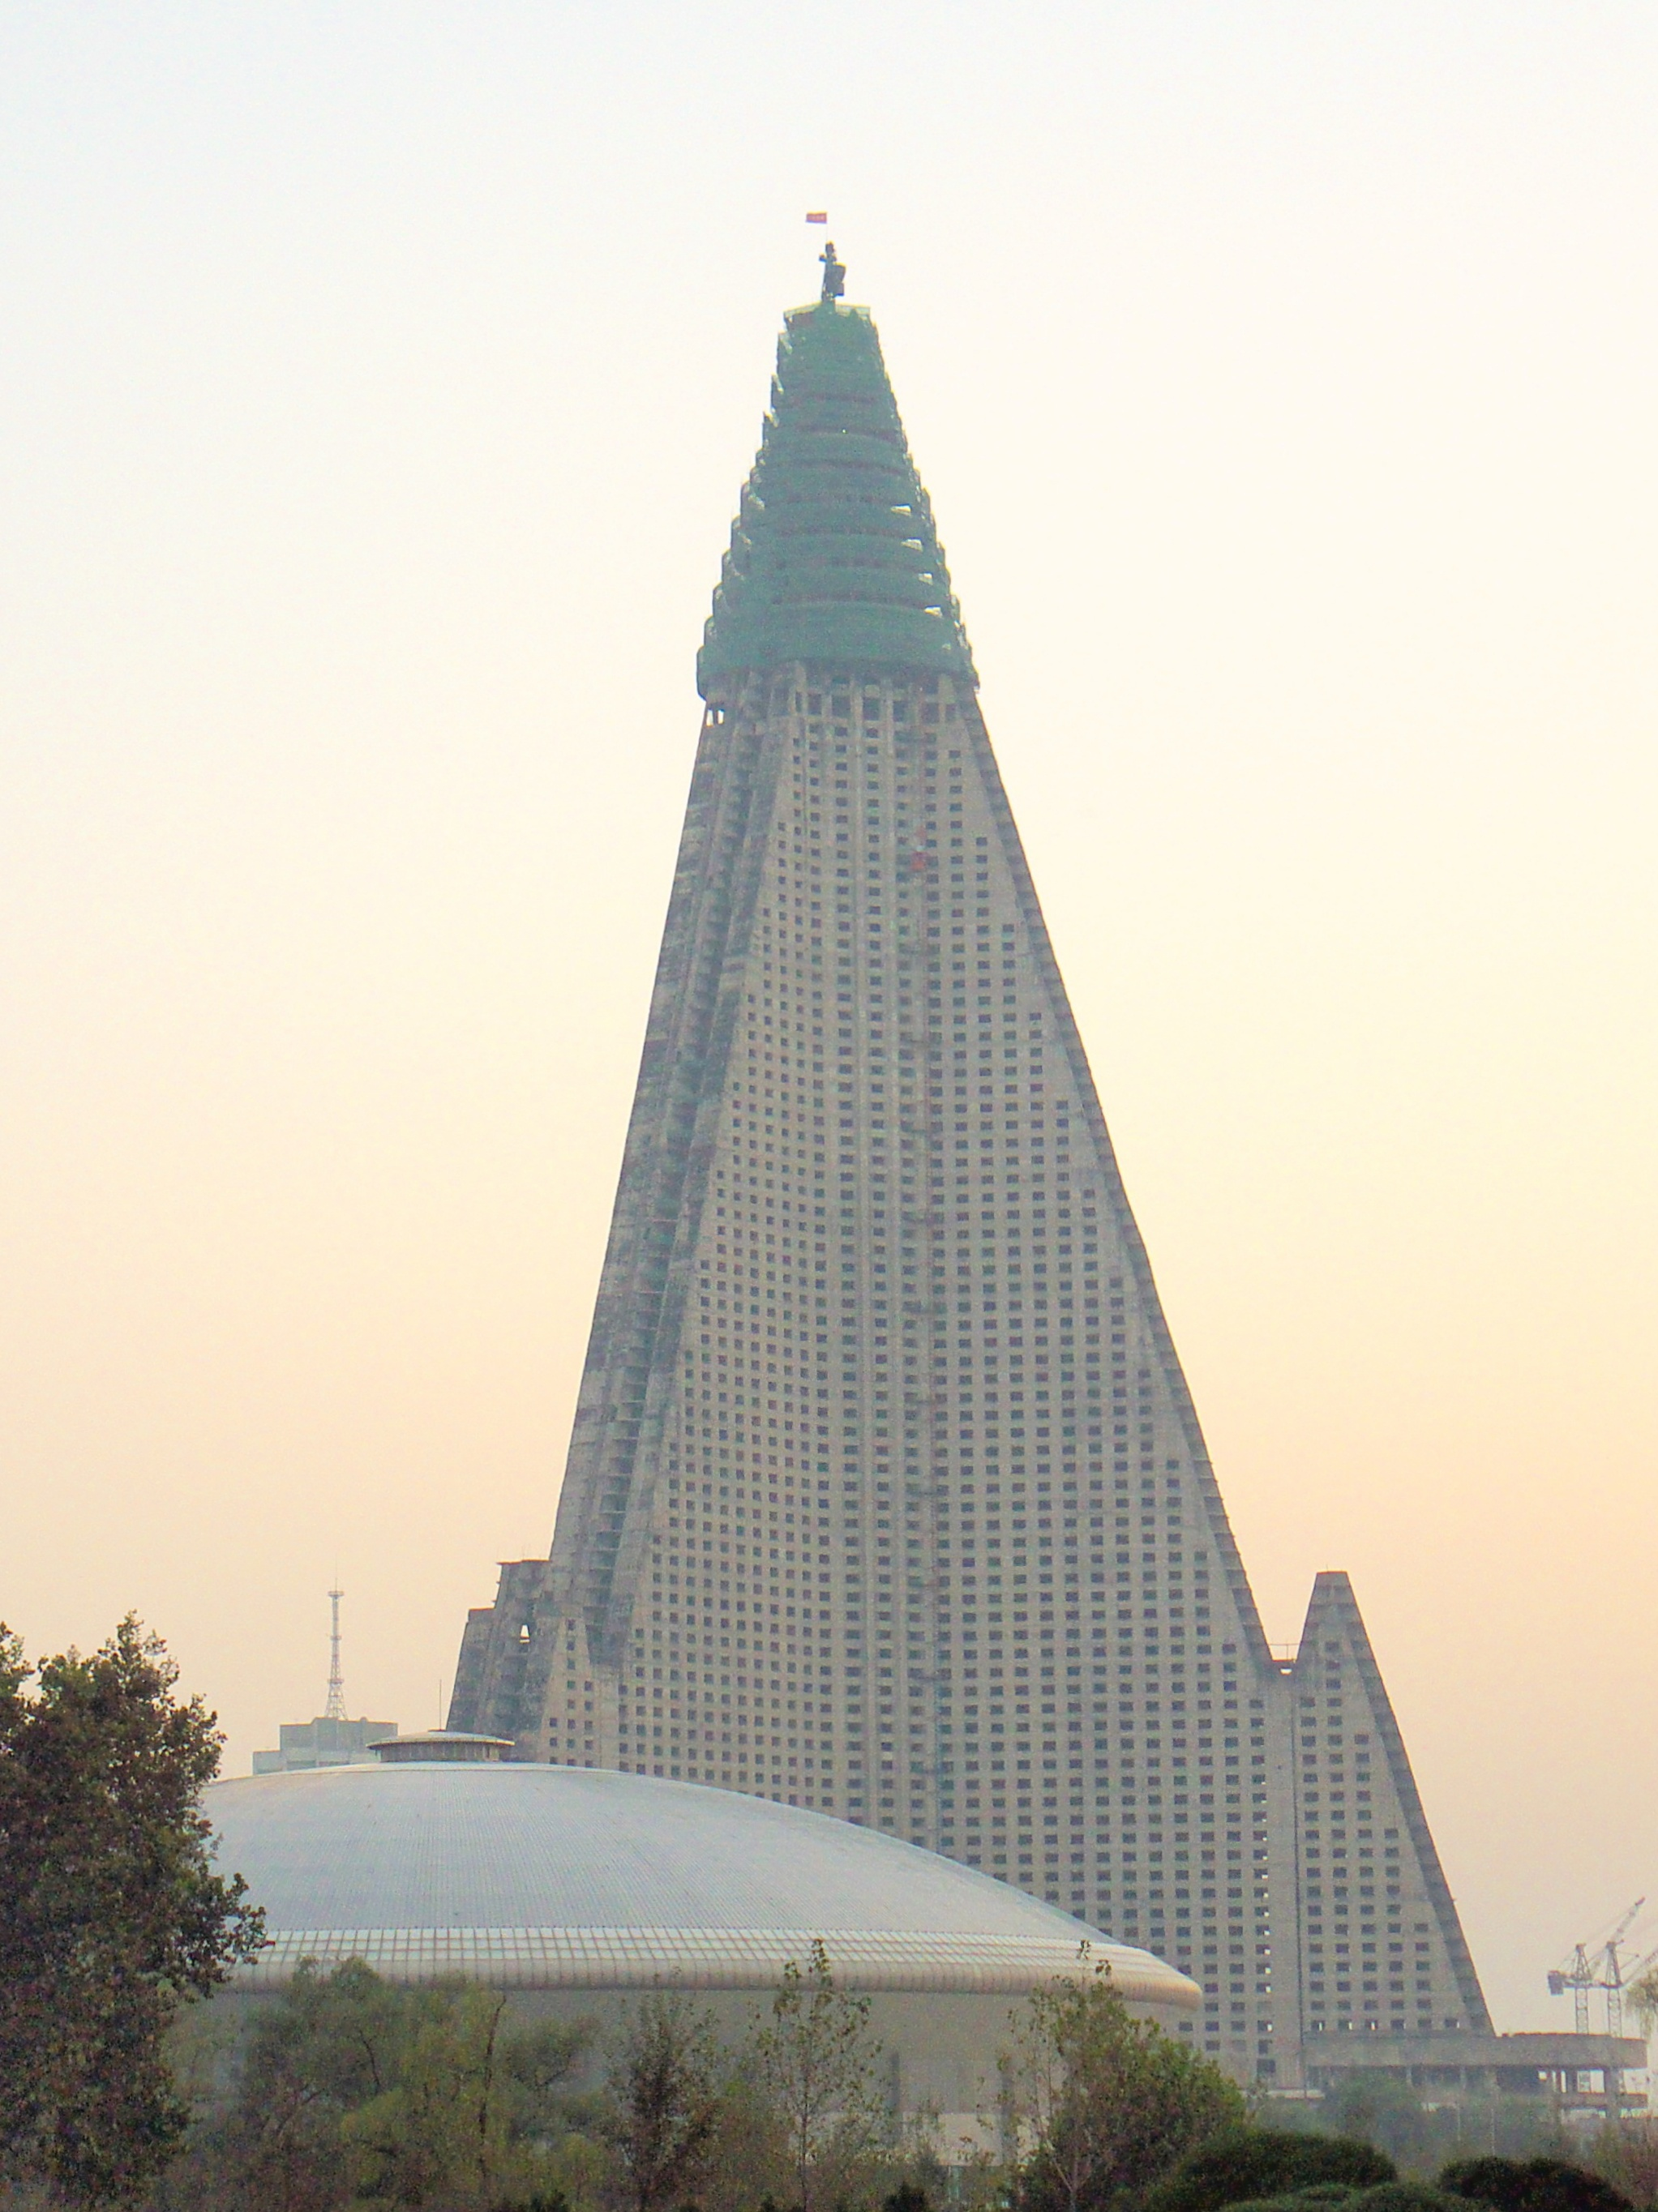 https://upload.wikimedia.org/wikipedia/commons/6/64/Ryugyong_Hotel,_Pyongyang,_North_Korea.jpg